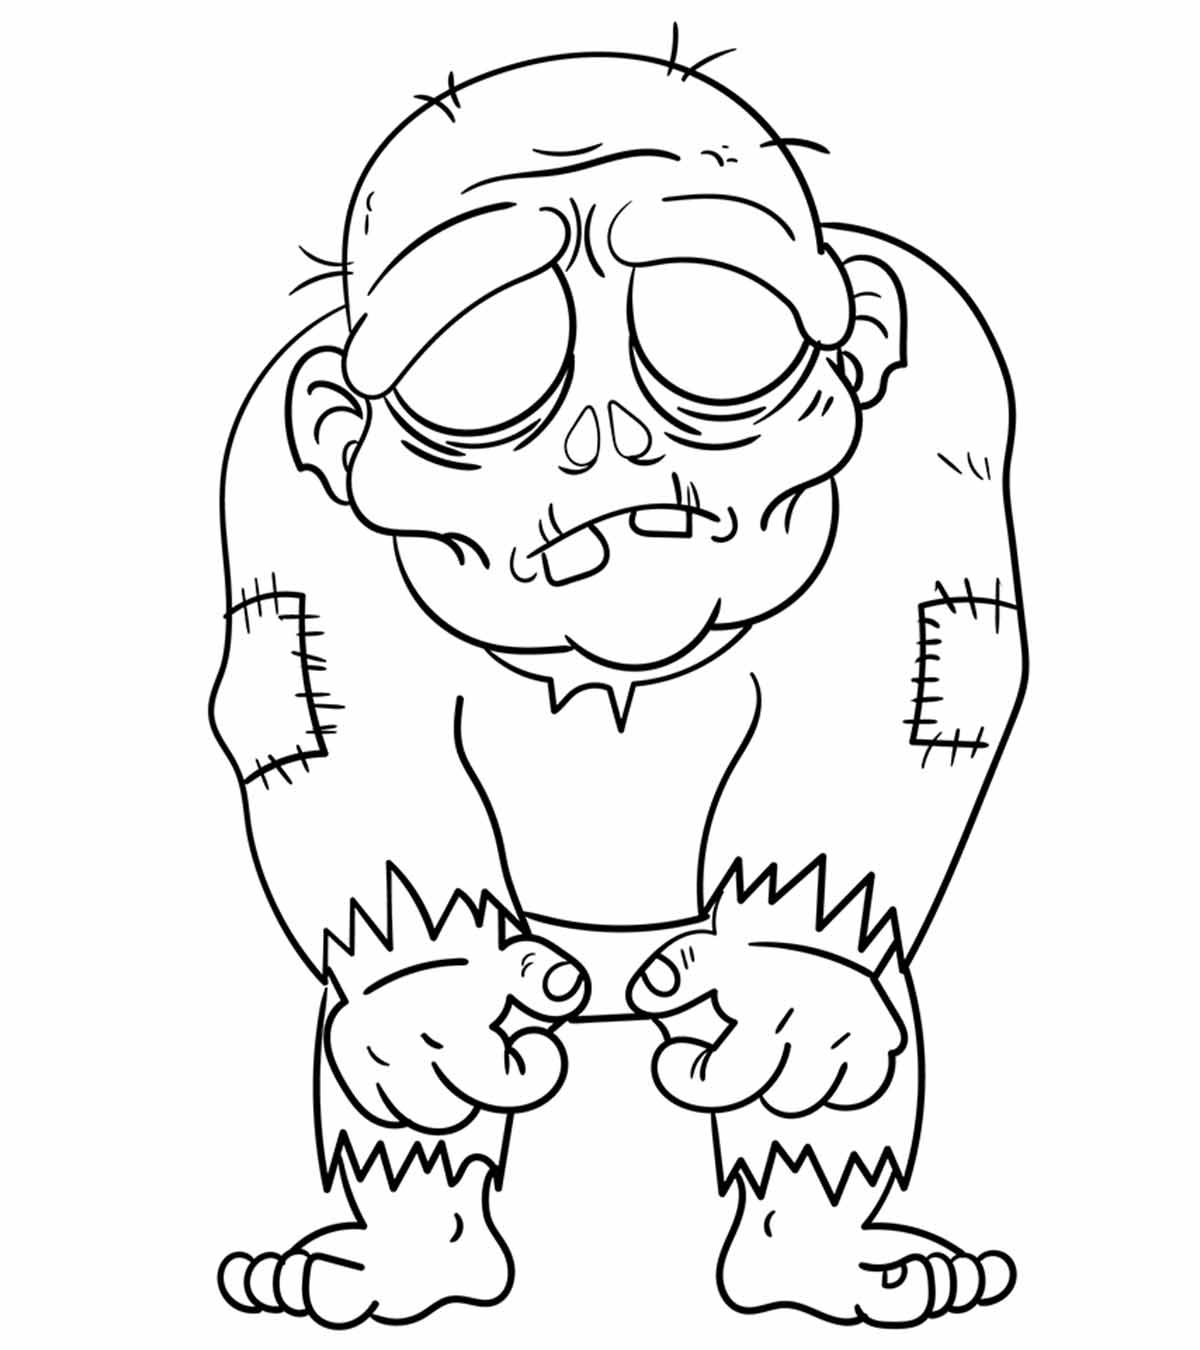 Coloring Pages Kids Parts Body: Cartoon Coloring Pages